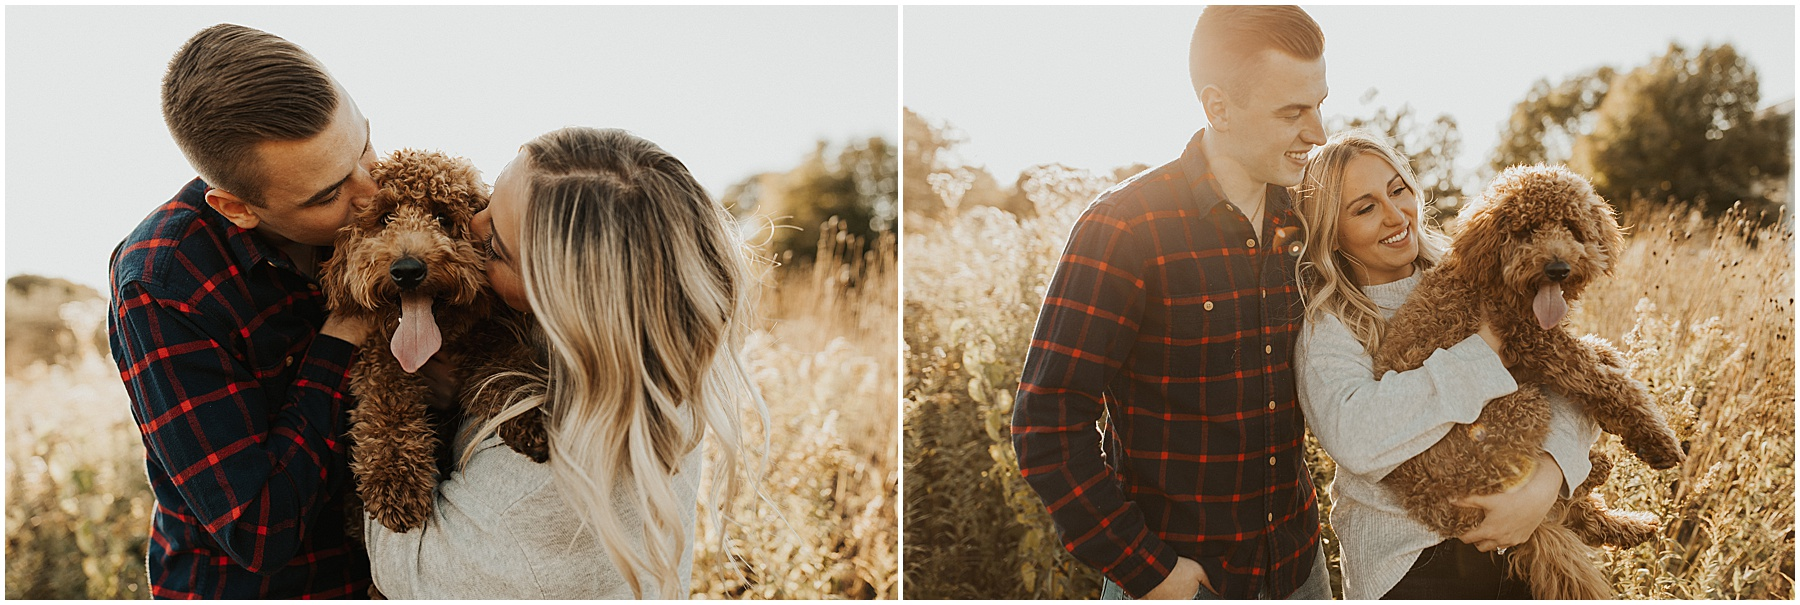 Unique and fun engagement session ideas_0011.jpg